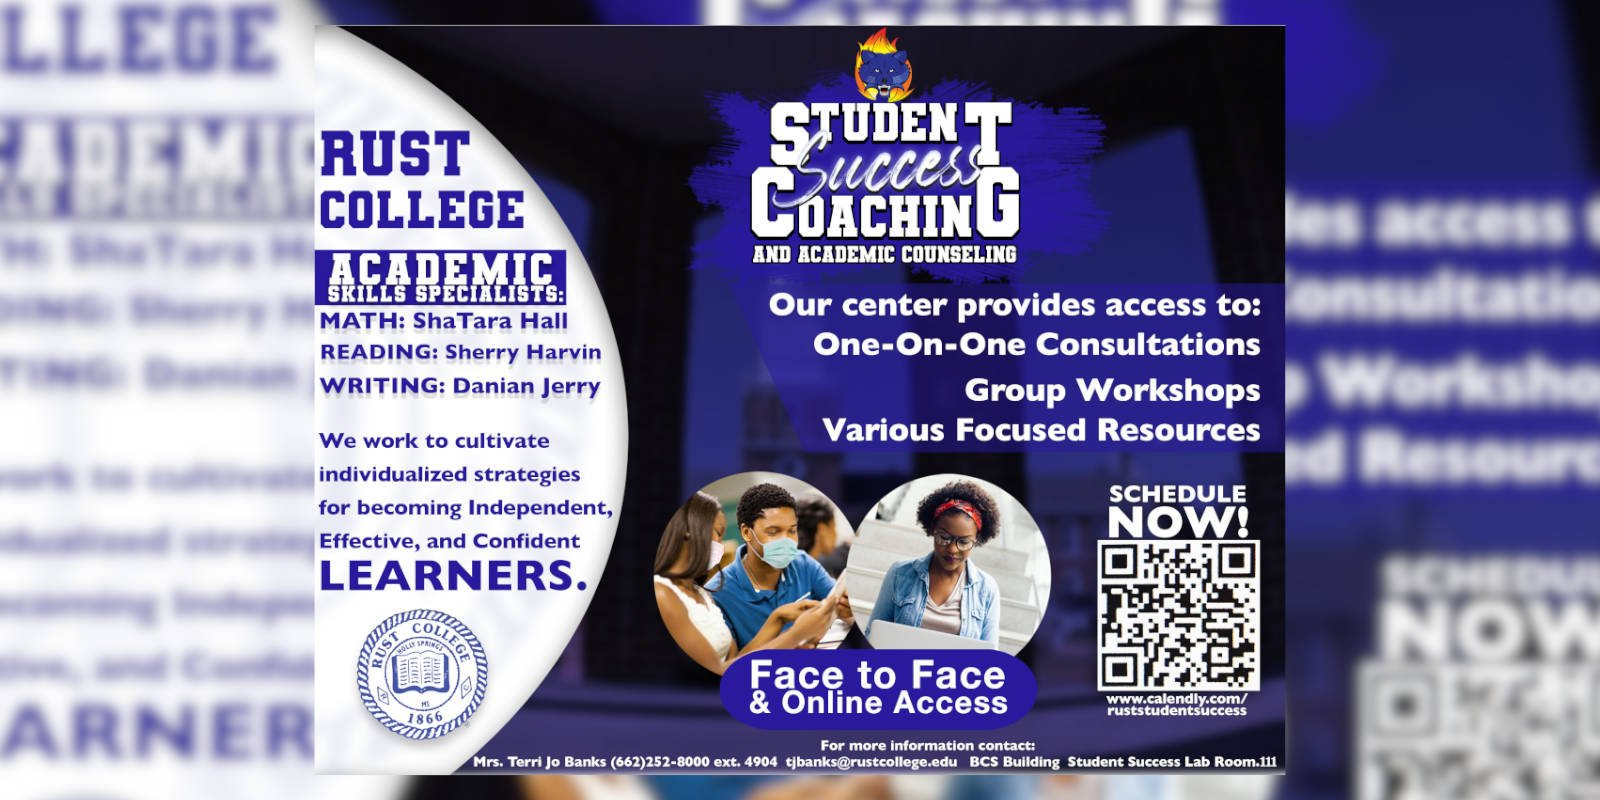 Rust College Student Success Coaching Flyer